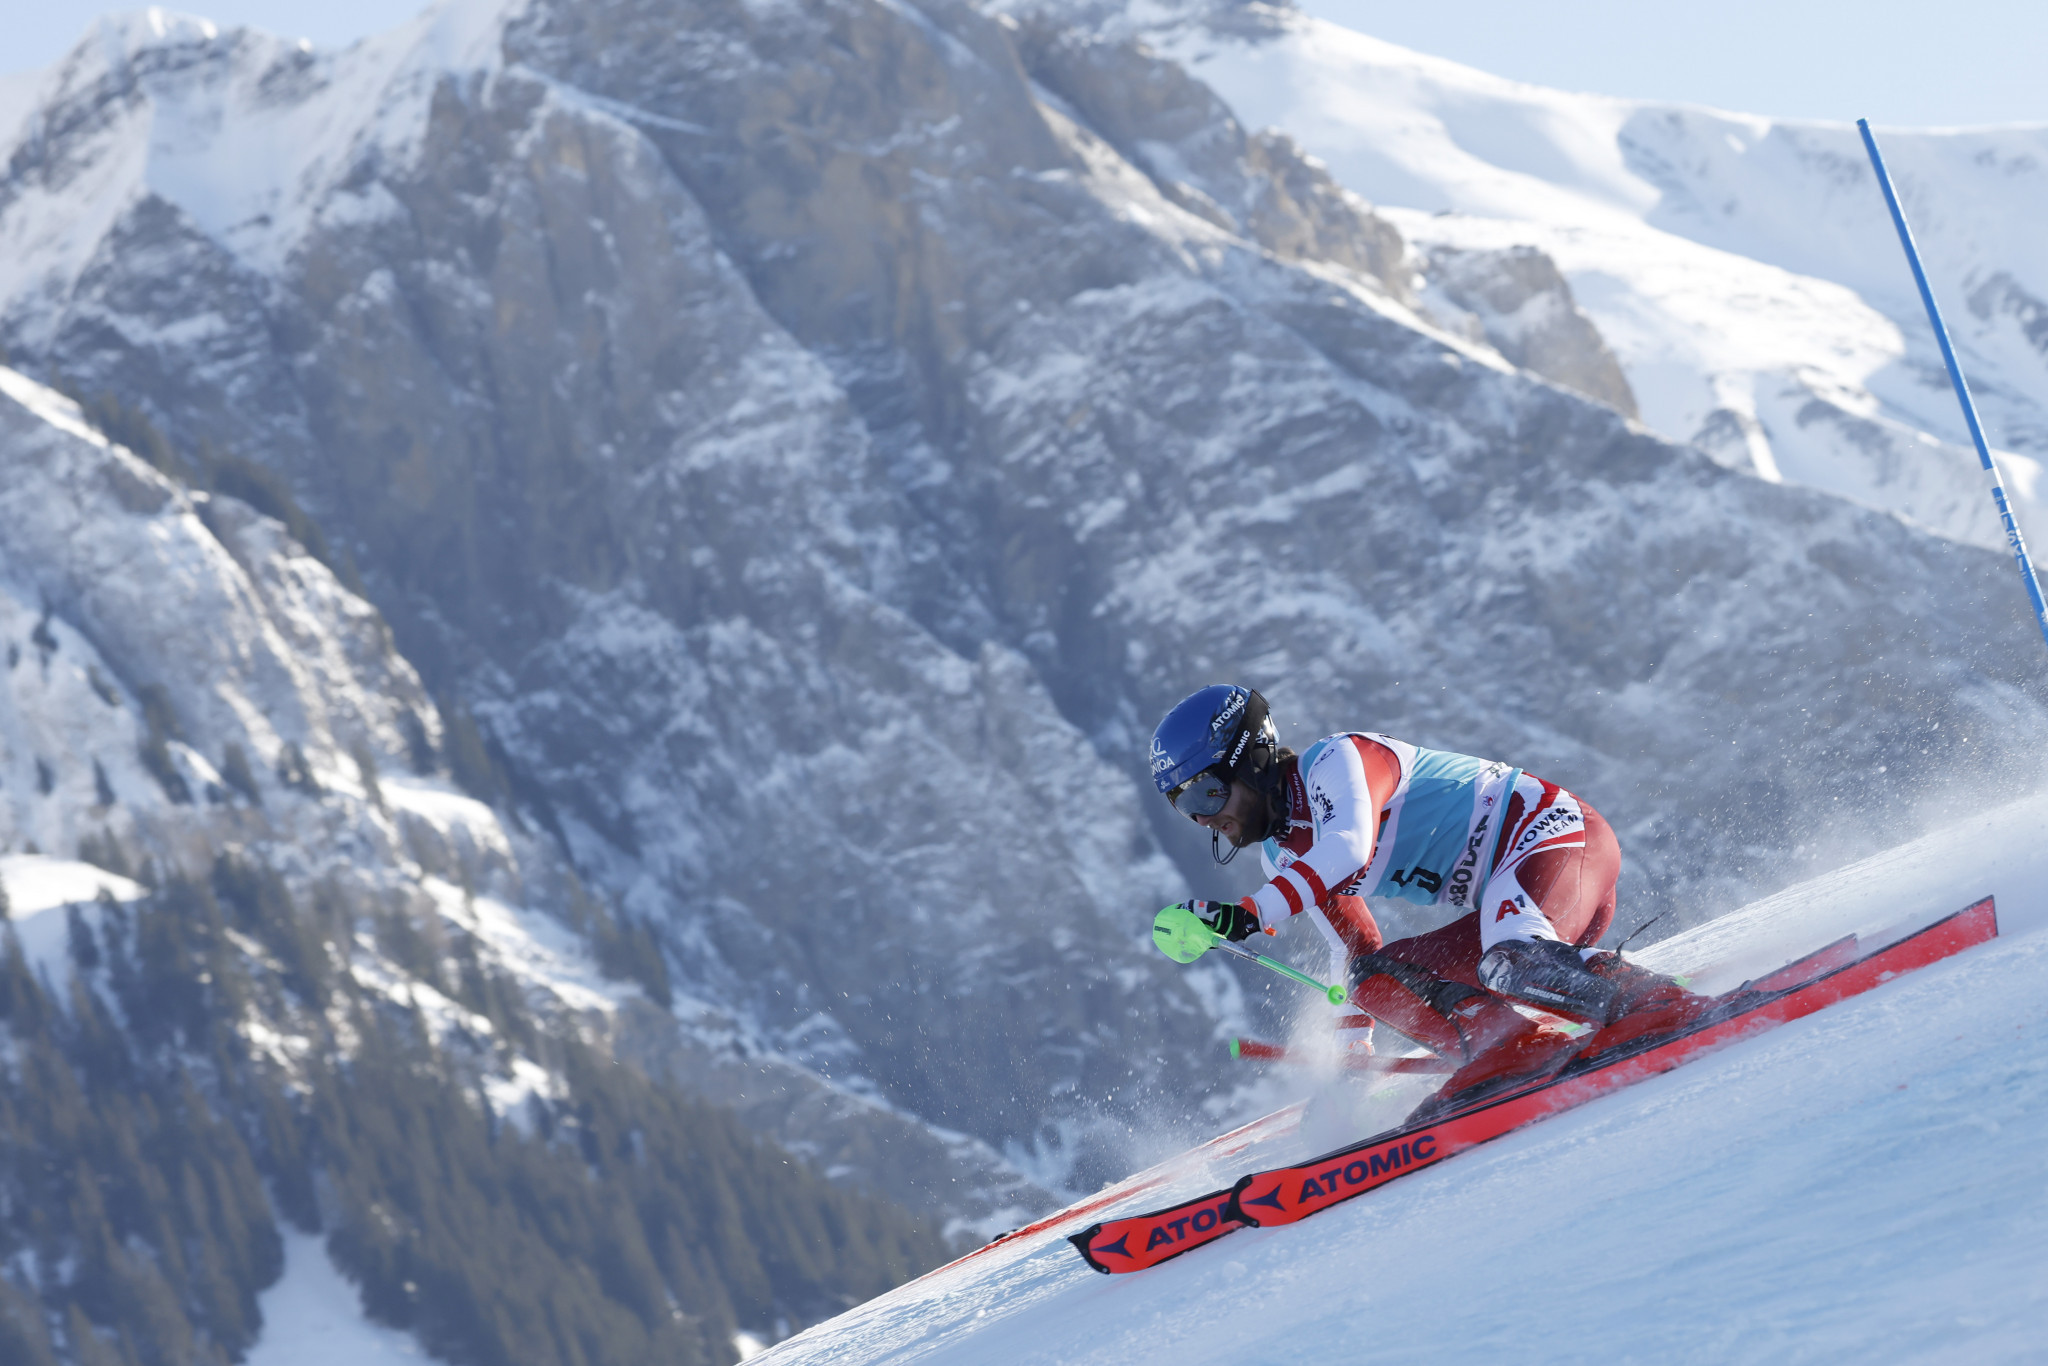 Schwarz earns slalom victory at FIS Alpine Ski World Cup in Adelboden